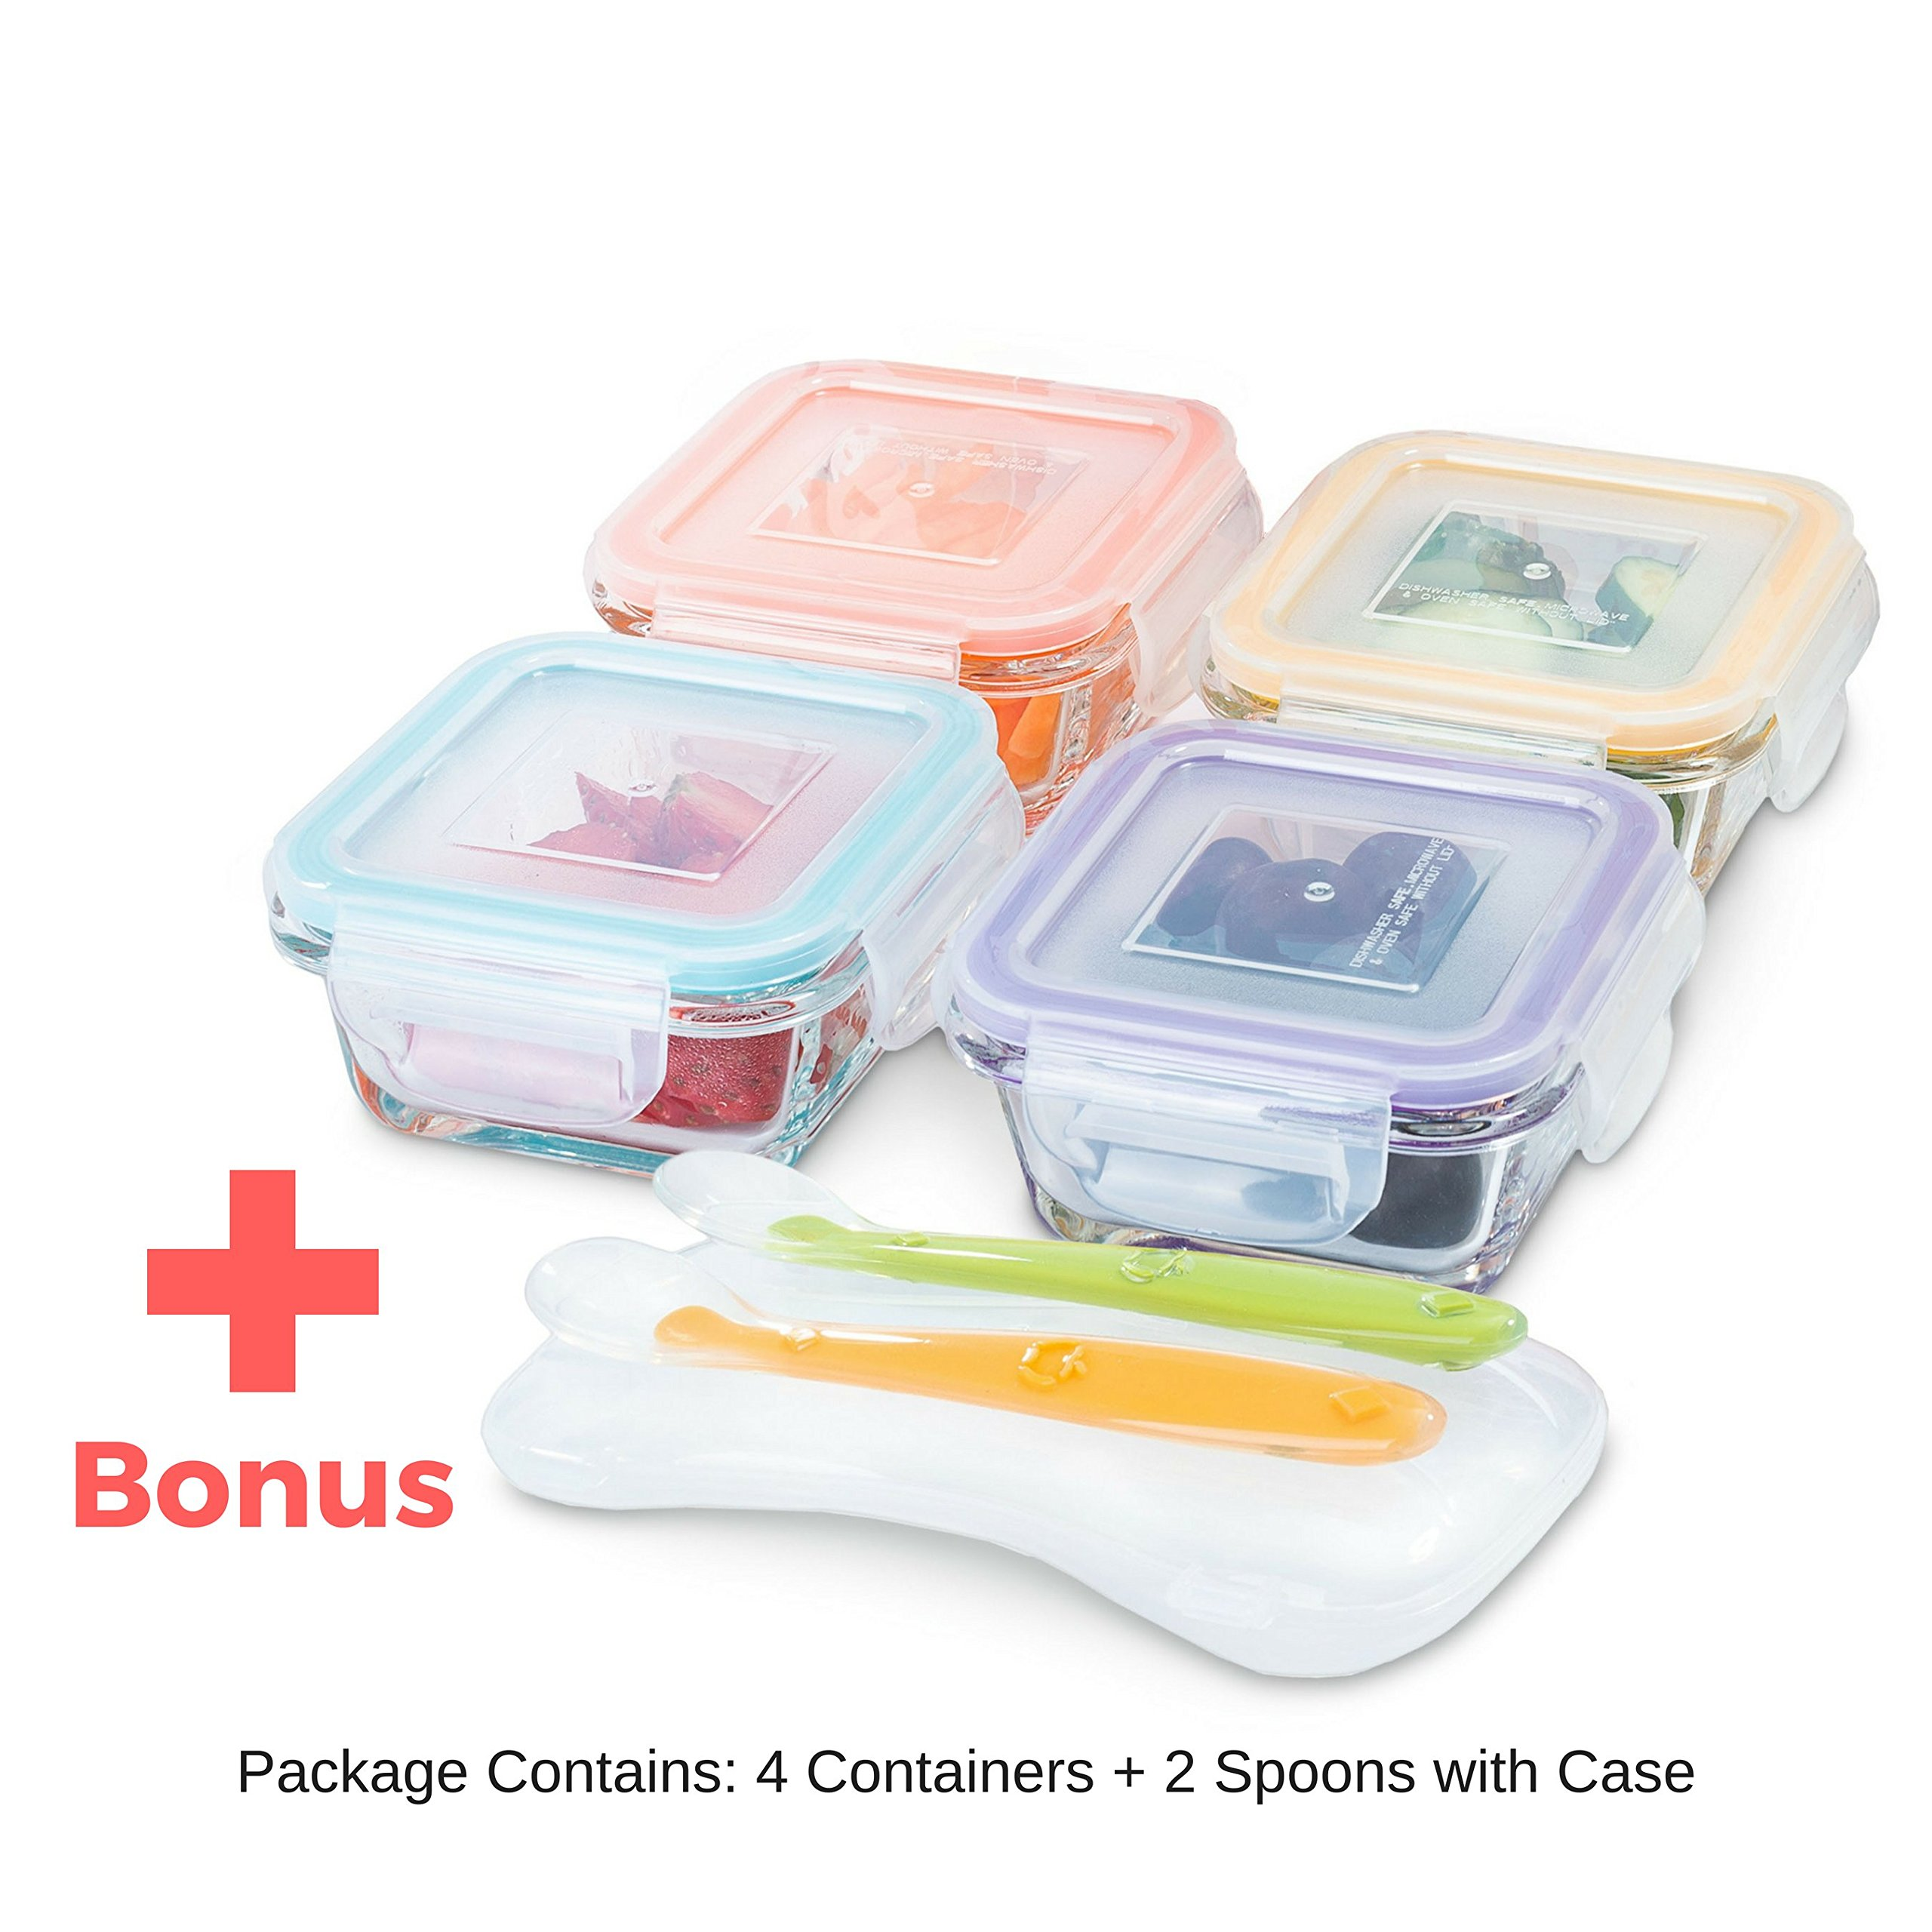 Glass Baby Food Storage Containers - 4 oz, BPA Free- Small Feeding Jars with Lids for Homemade Toddler Food Maker or Kids Lunch Box - Perfect Baby Shower Registry Gift Set (4 Containers + 2 Spoons)